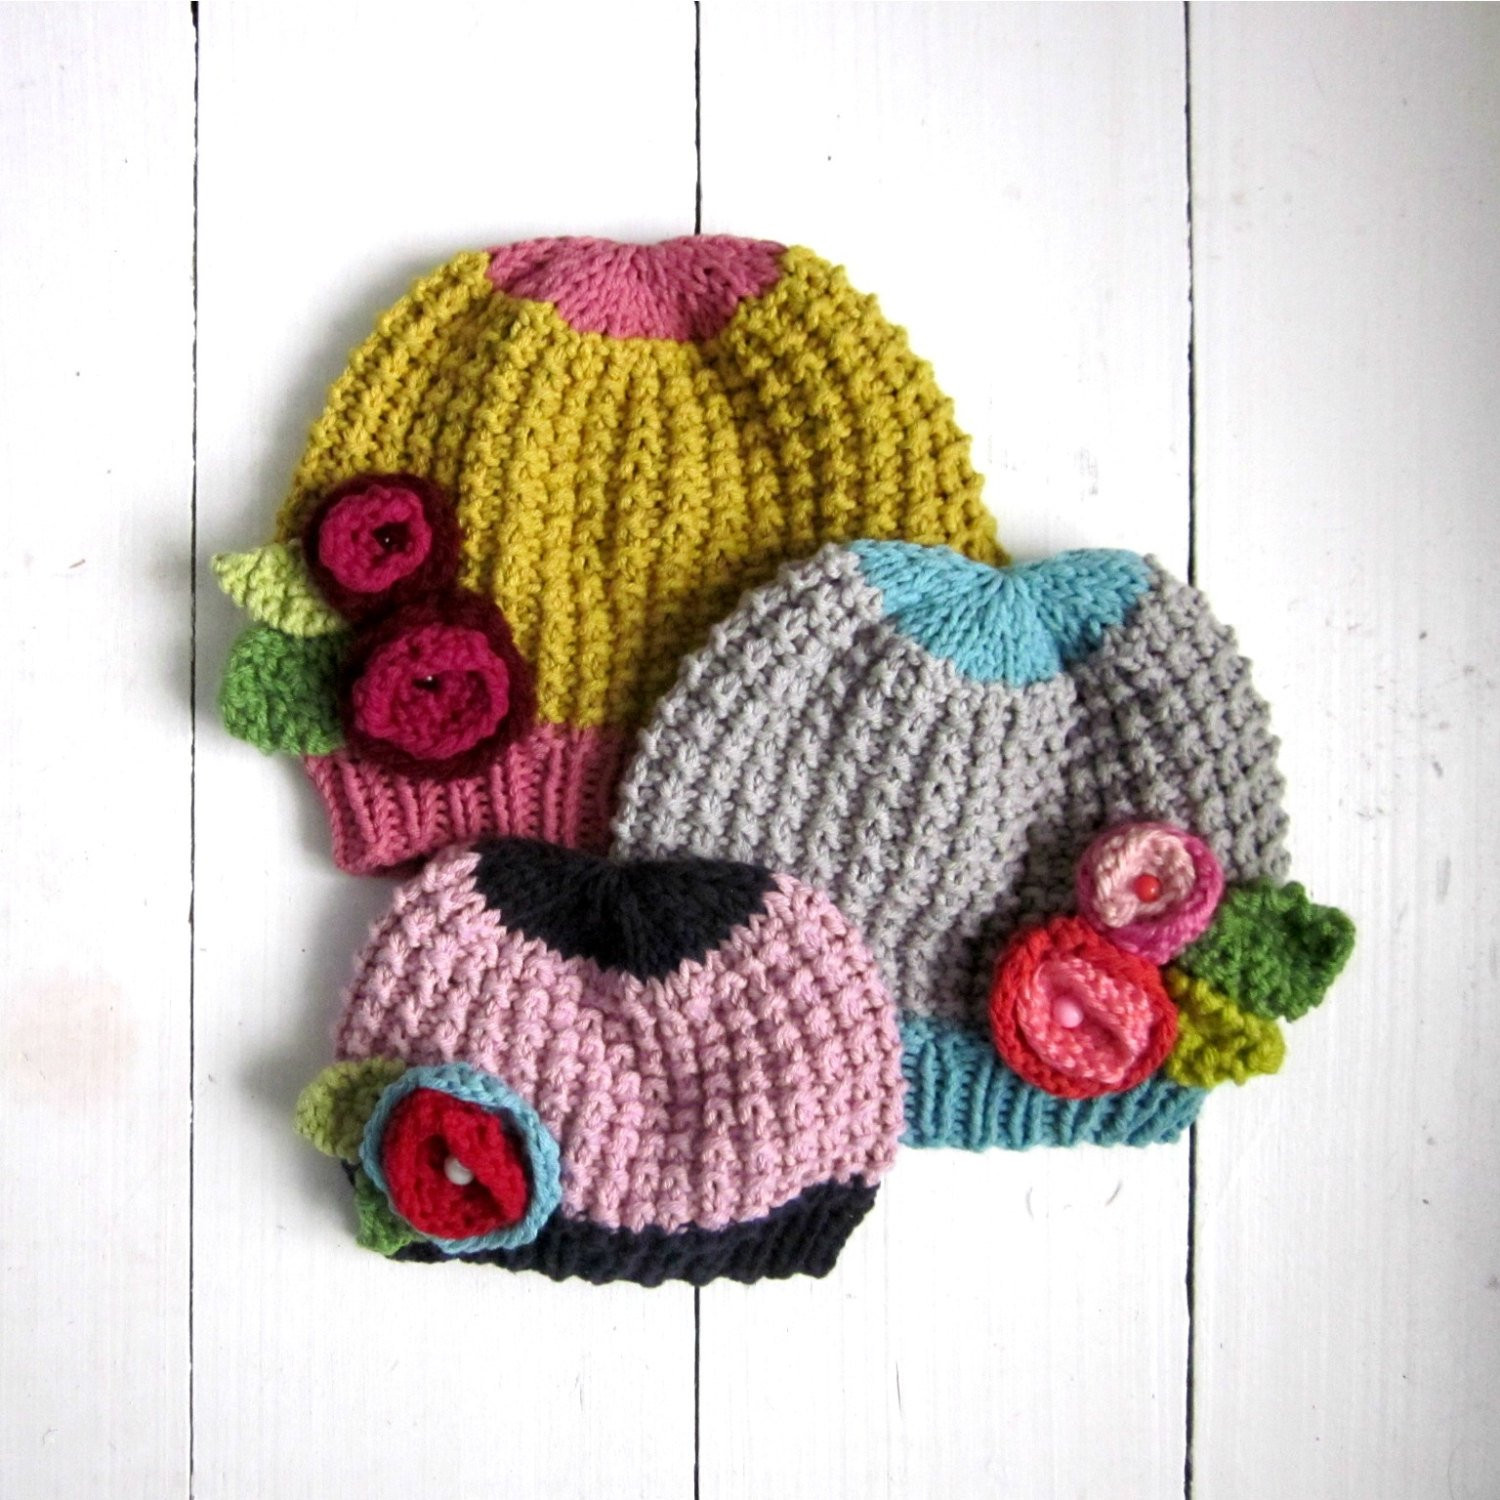 Knitted Baby Hats Beautiful Knitting Pattern Baby Girl Hat with Flowers Pdf Instant Of Awesome 41 Images Knitted Baby Hats